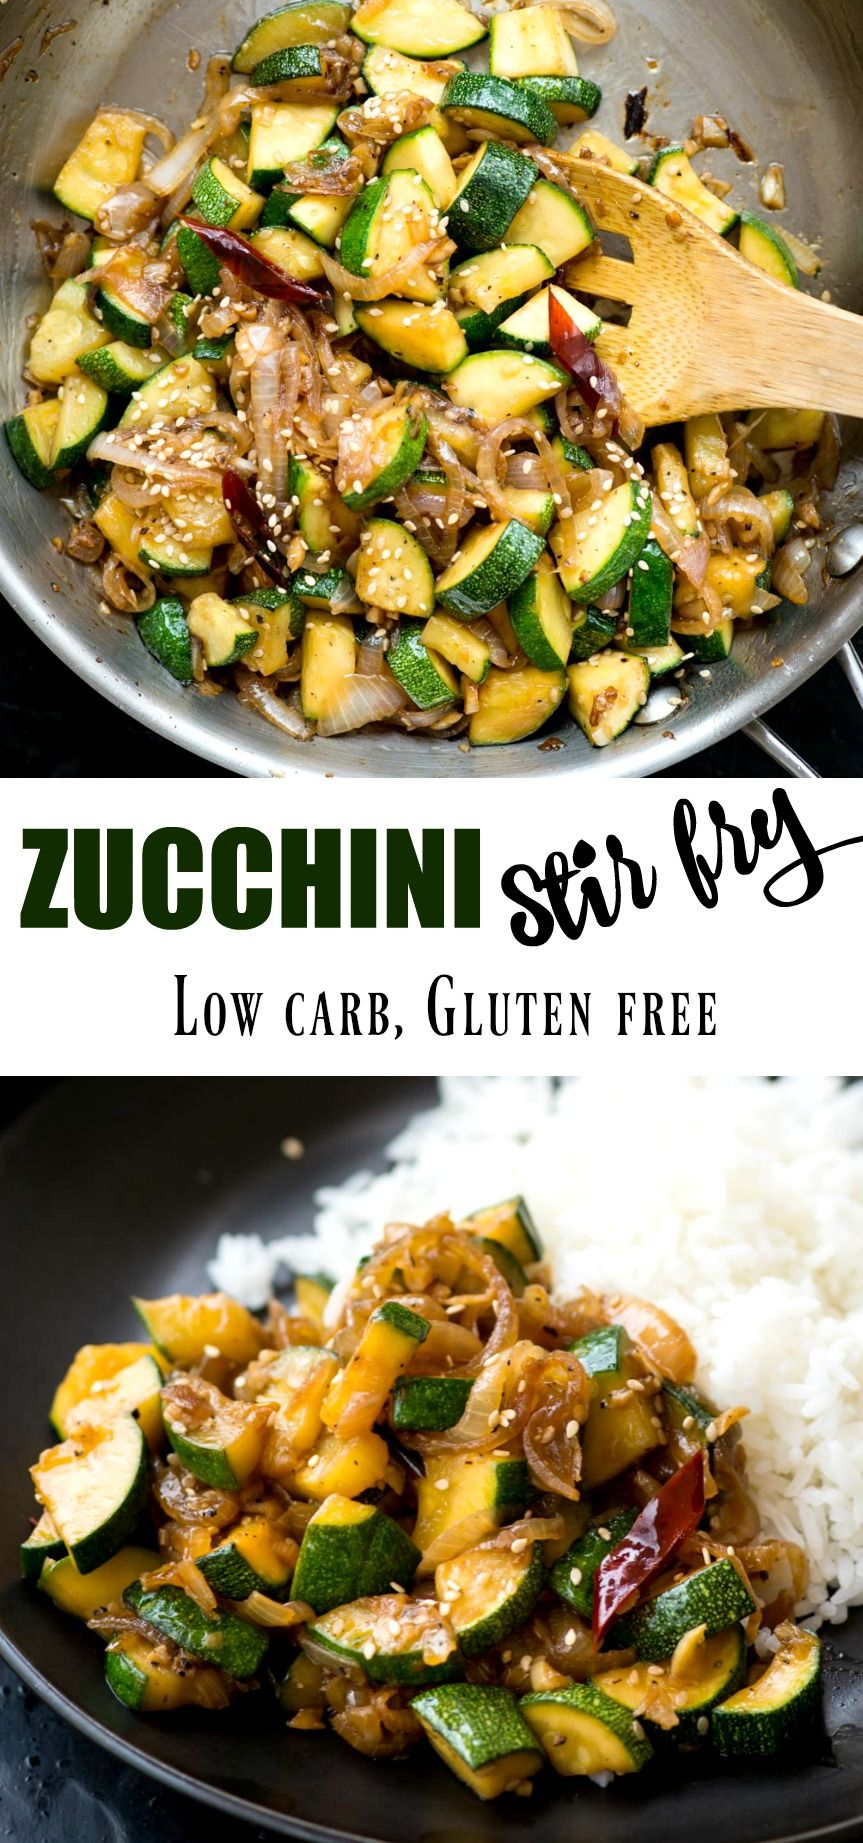 Photo of This flavour-packed Zucchini Stir Fry gets ready in 15 mins. Make this super qui…